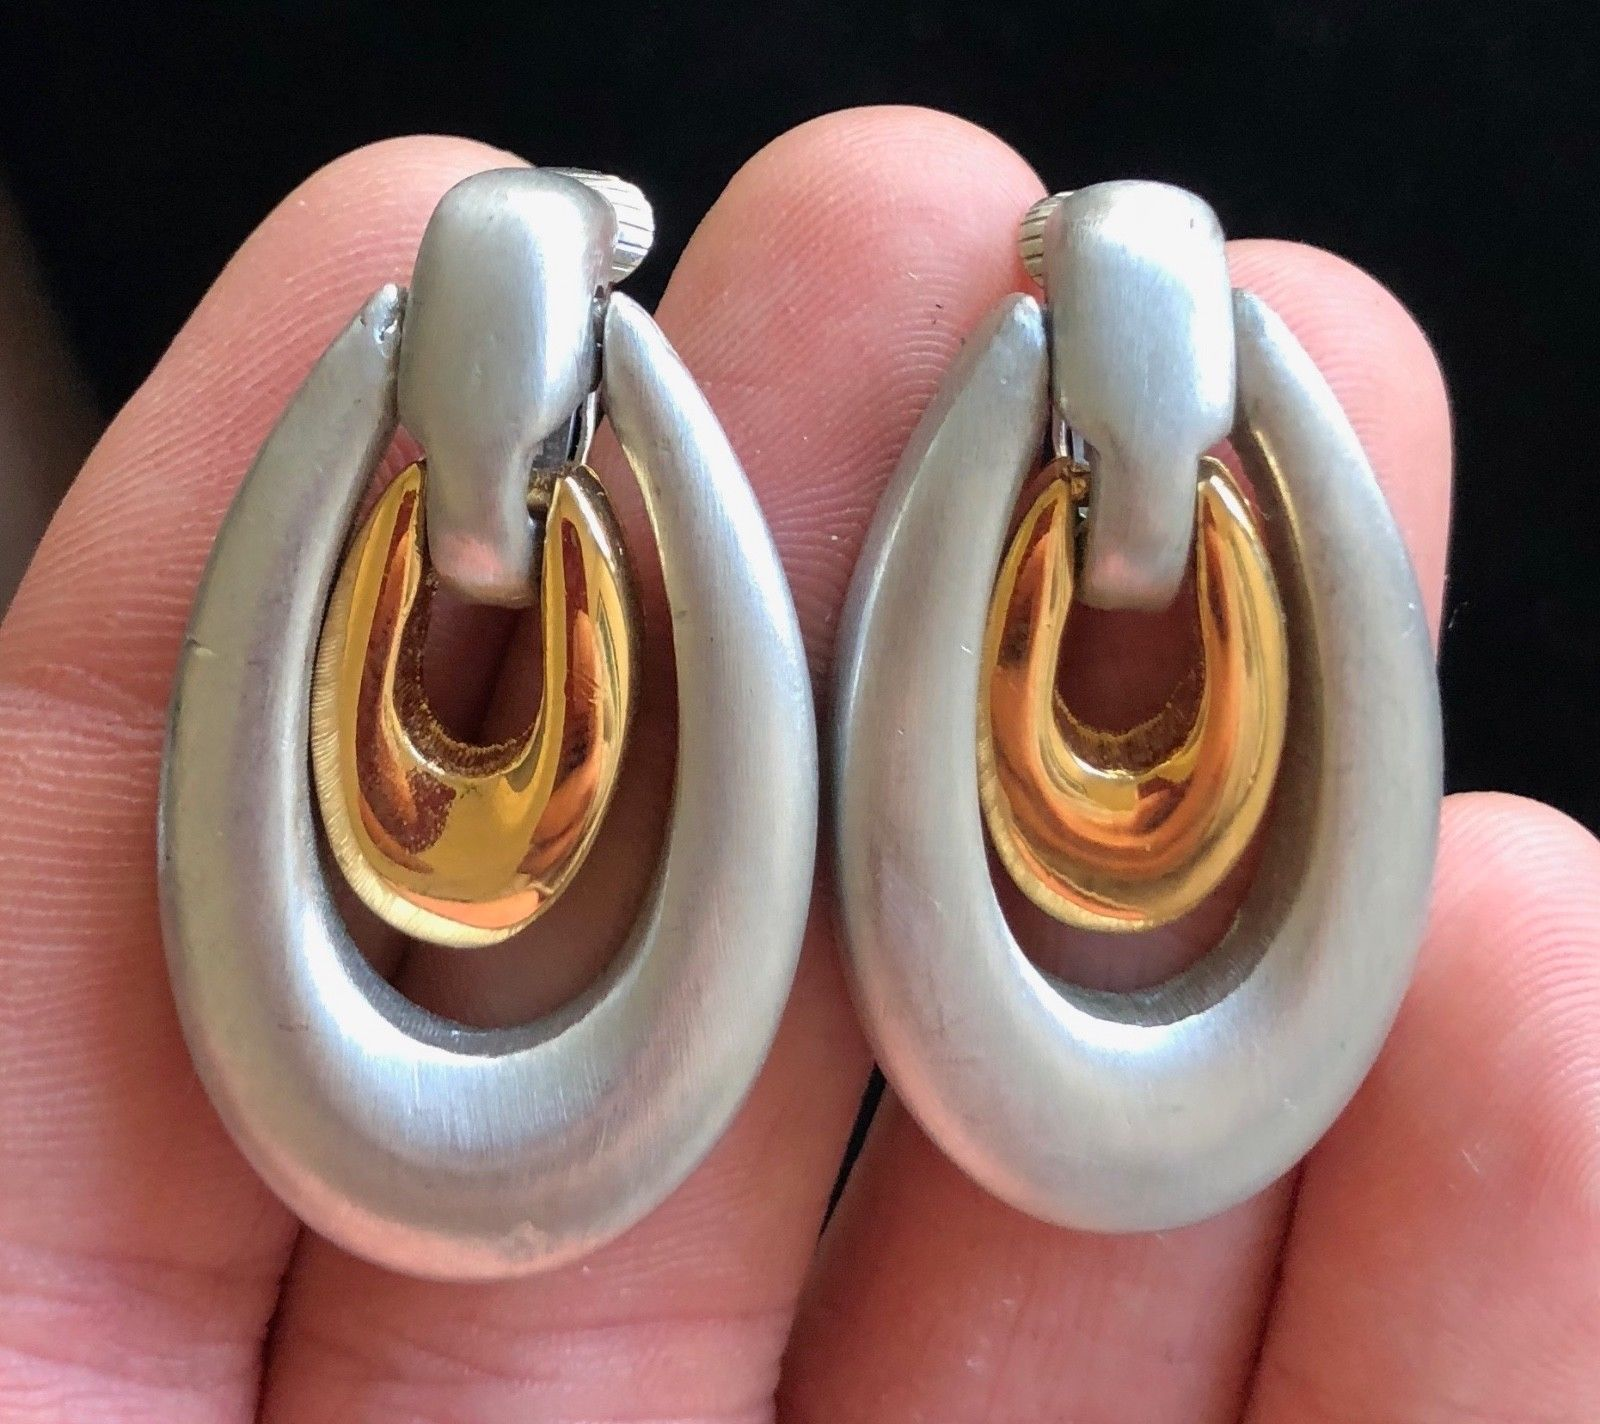 e2c7f336e ALICE CAVINESS Vintage Silver and Gold-Tone Clip-on EARRINGS - 1 3/4 inches  - $48.50